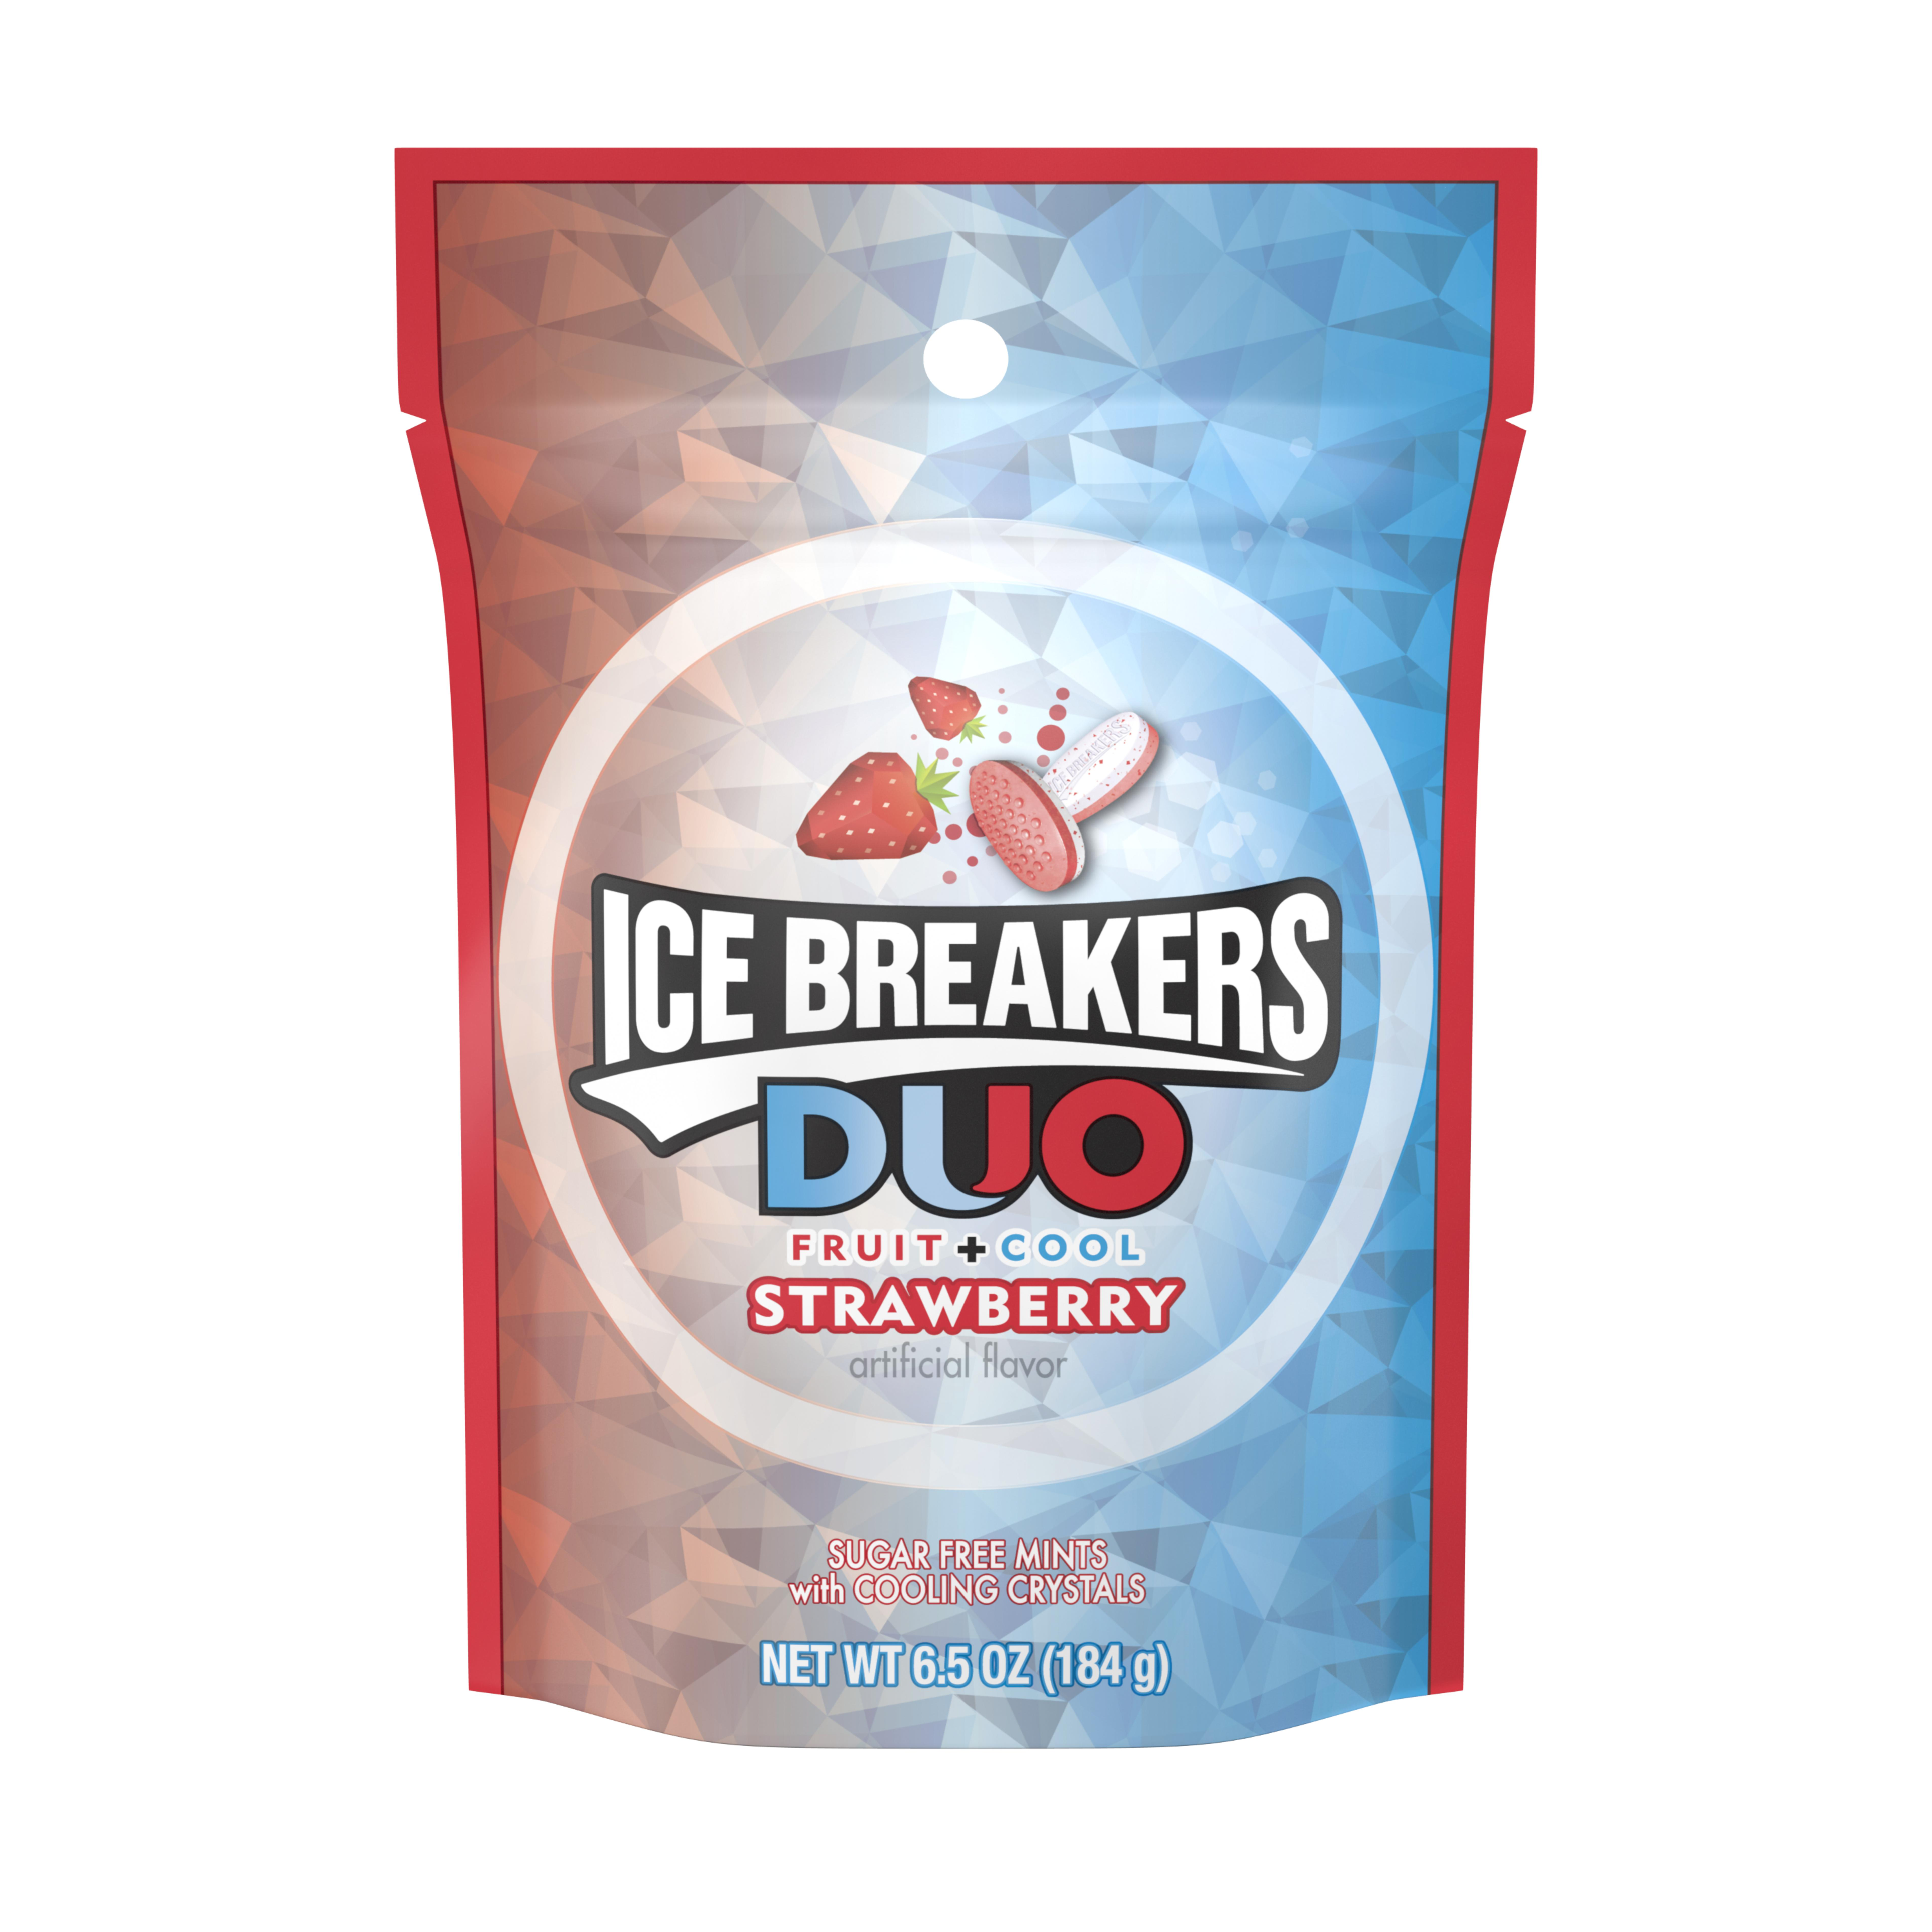 ICE BREAKERS Sugar-Free Duo Fruit & Cool Strawberry Mints, 6.5 Oz.